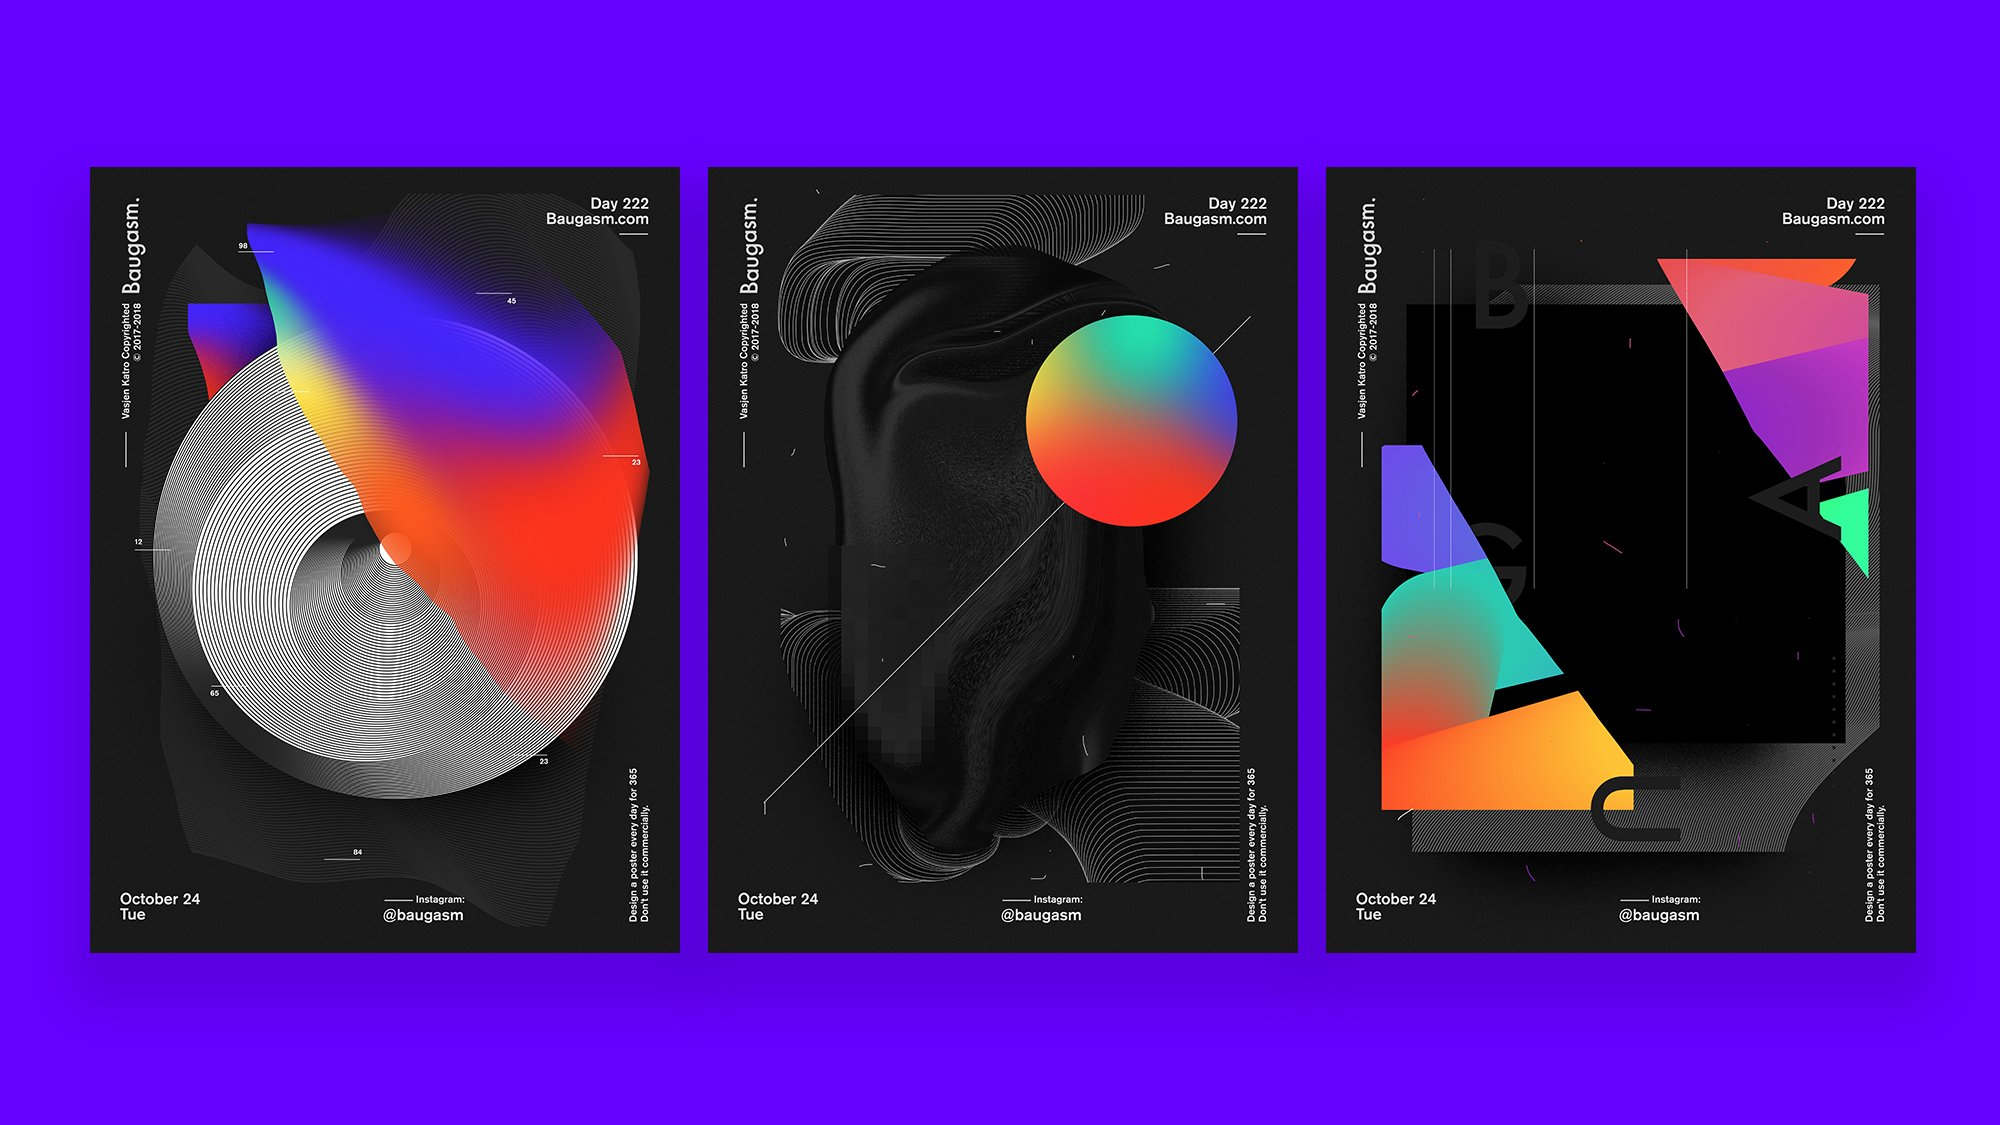 Baugasm™ Series #9 - Design 3 Different Abstract Posters in